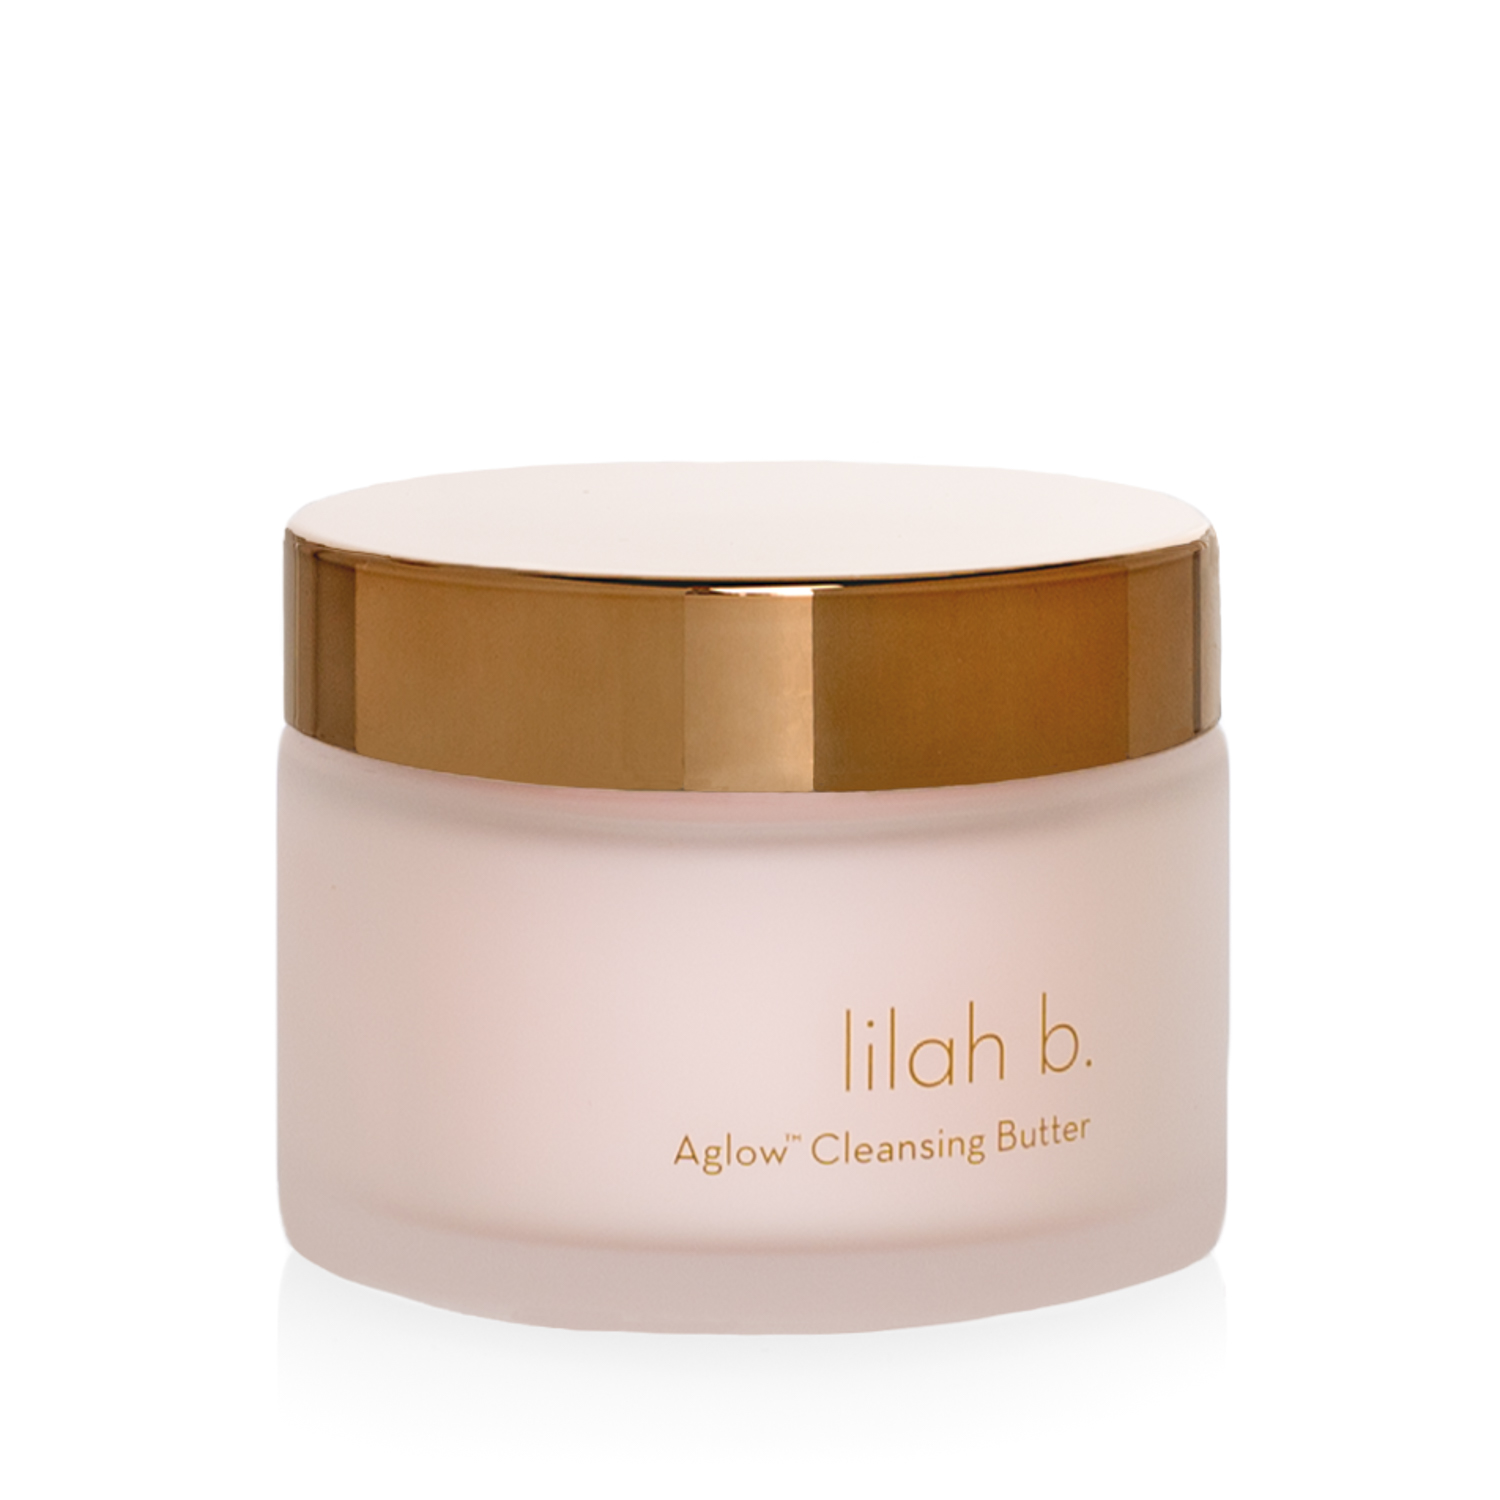 aglow-cleansing-butter-print.jpg